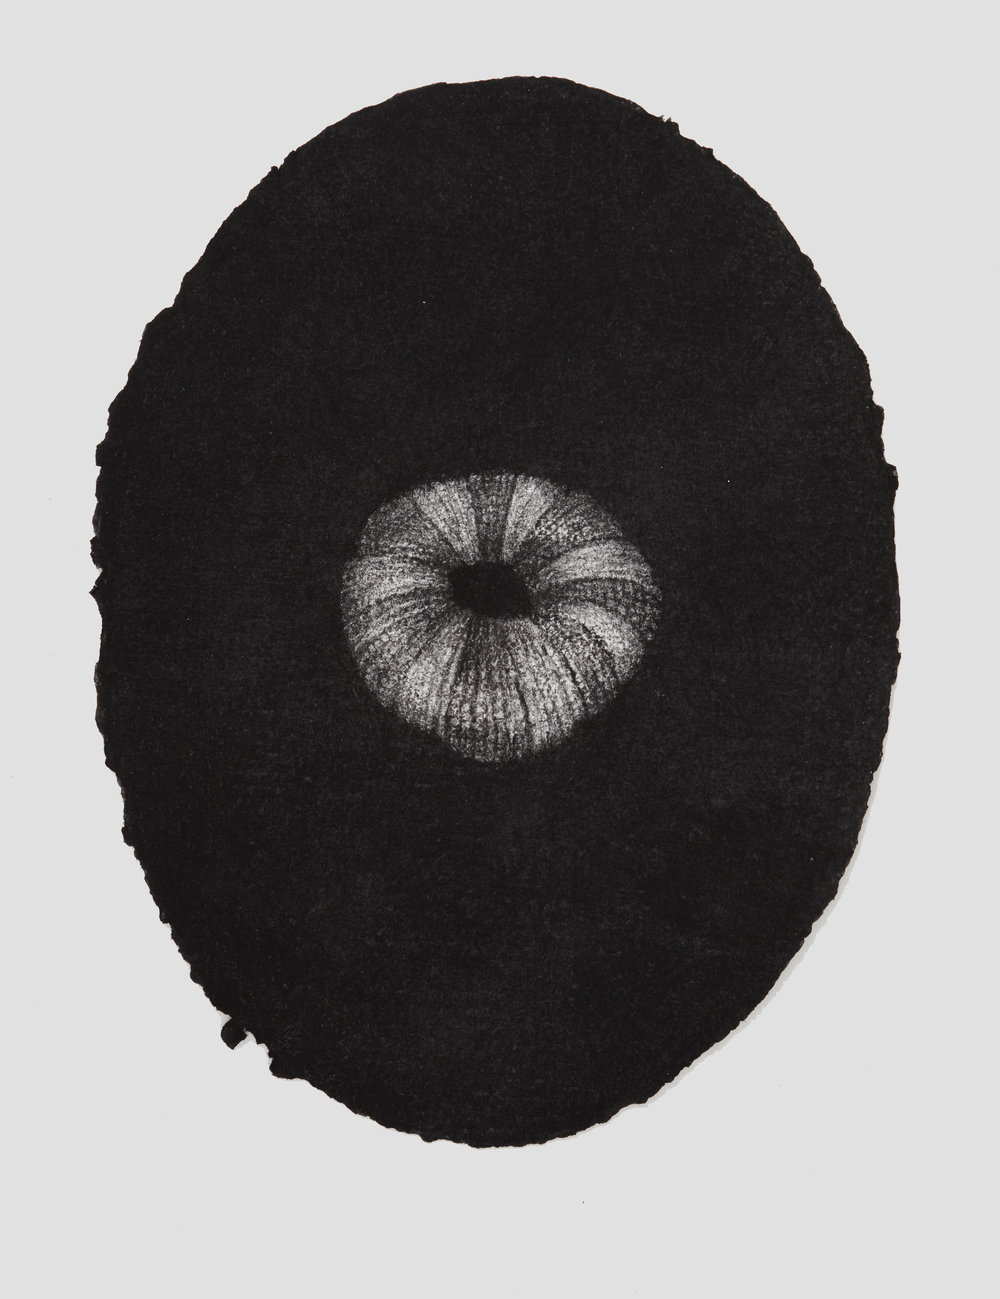 portrait urchin, 2017, 44x33cm, charcoal on paper